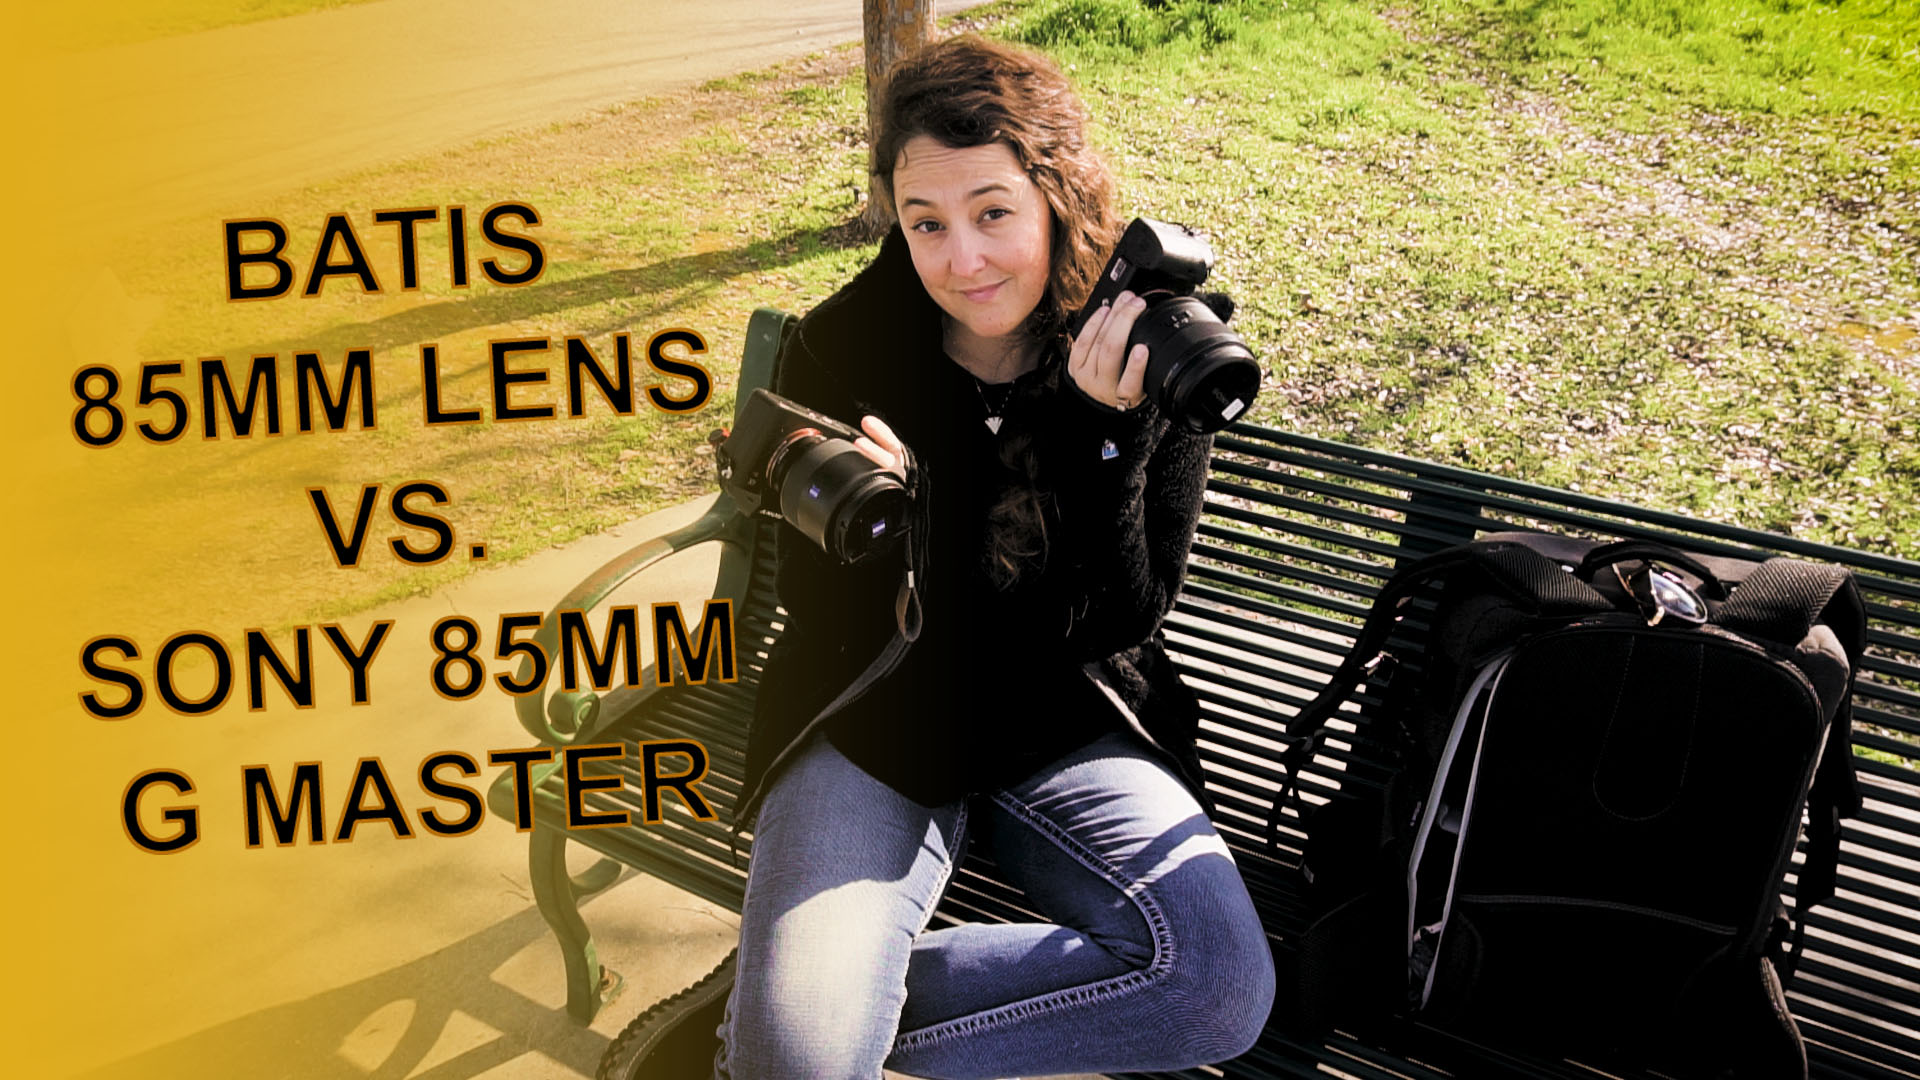 Batis 85mm vs Sony 85mm G Master lens comparision by Bessie young THUMBNAIL.jpg